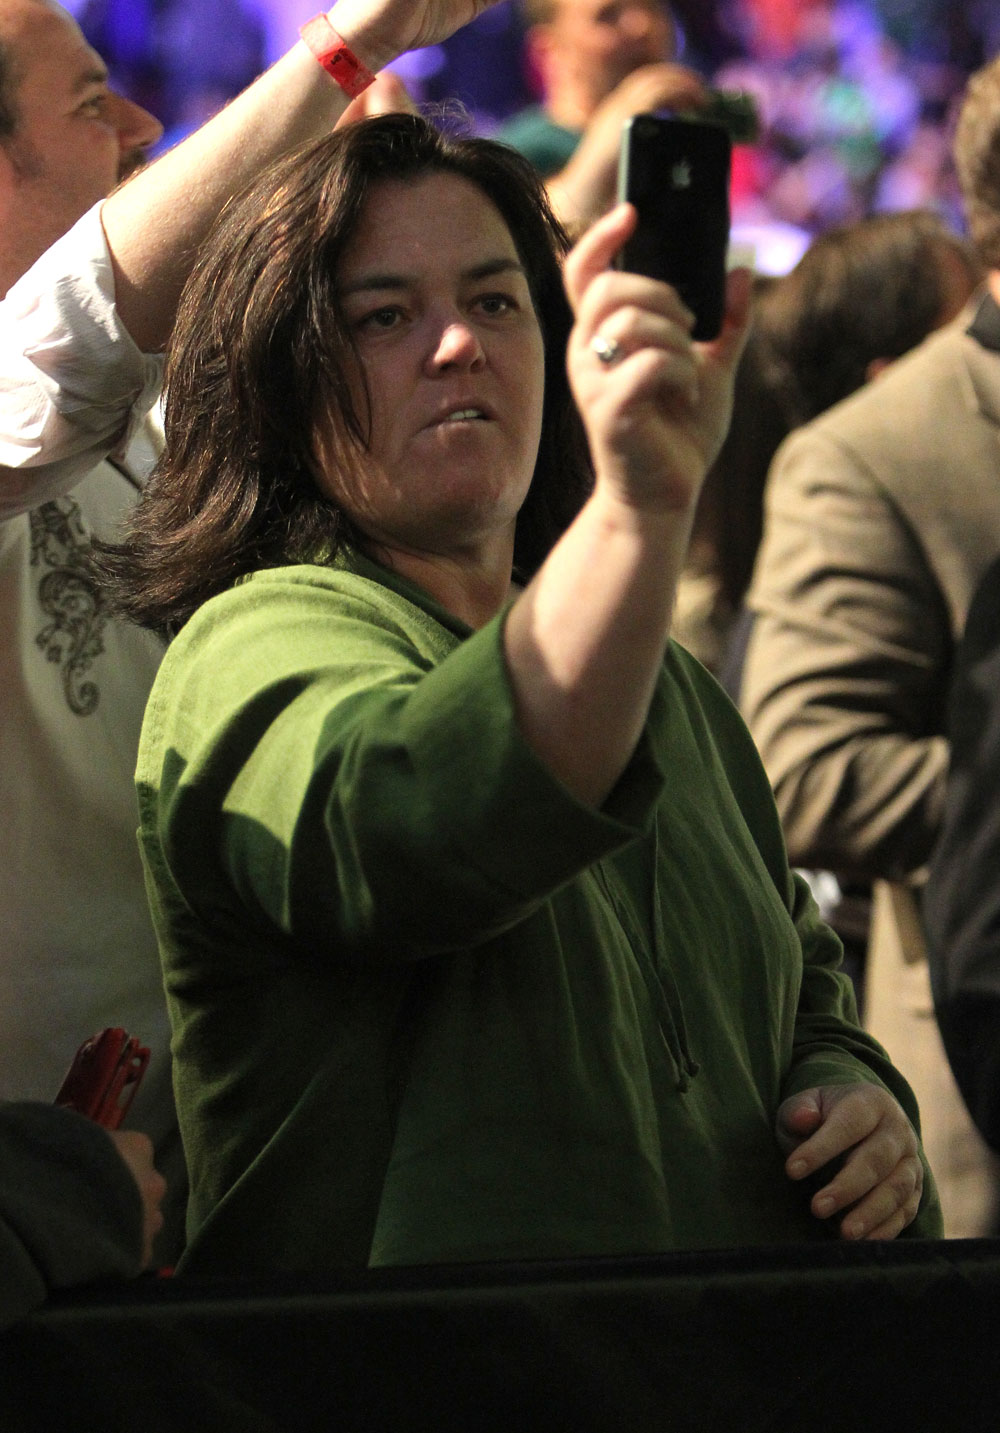 Comedian Rosie O'Donnell attends UFC 128 in Newark, New Jersey.